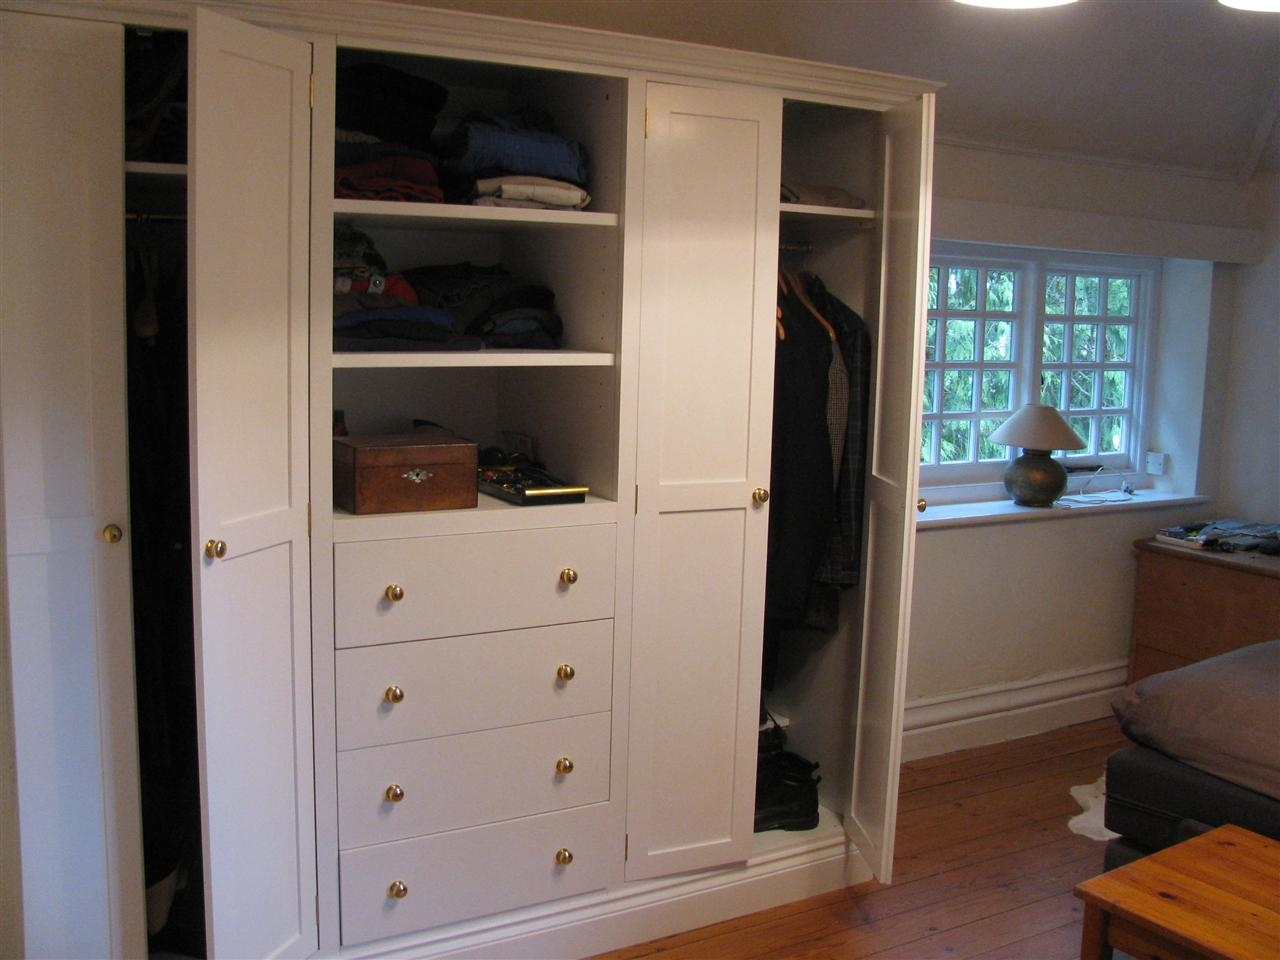 Wardrobes Pertaining To Wardrobes With Shelves And Drawers (View 10 of 15)